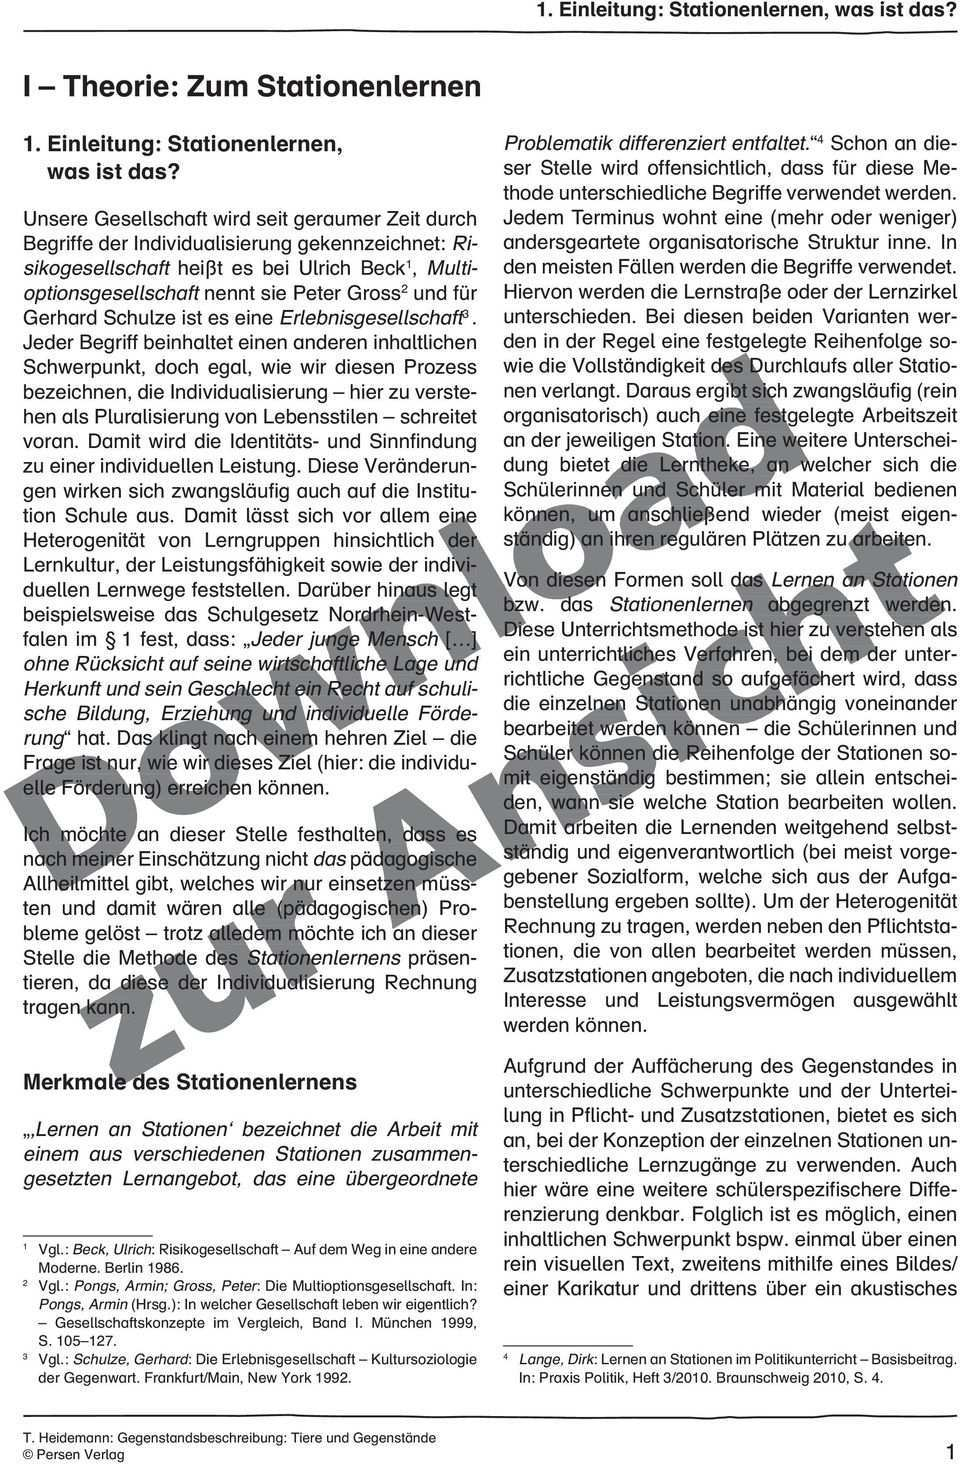 Download Gegenstandsbeschreibung Und Gegenstande Stationenlernen Deutsch 5 Klasse Deutsch 5 Klasse Tim Heidemann Pdf Free Download